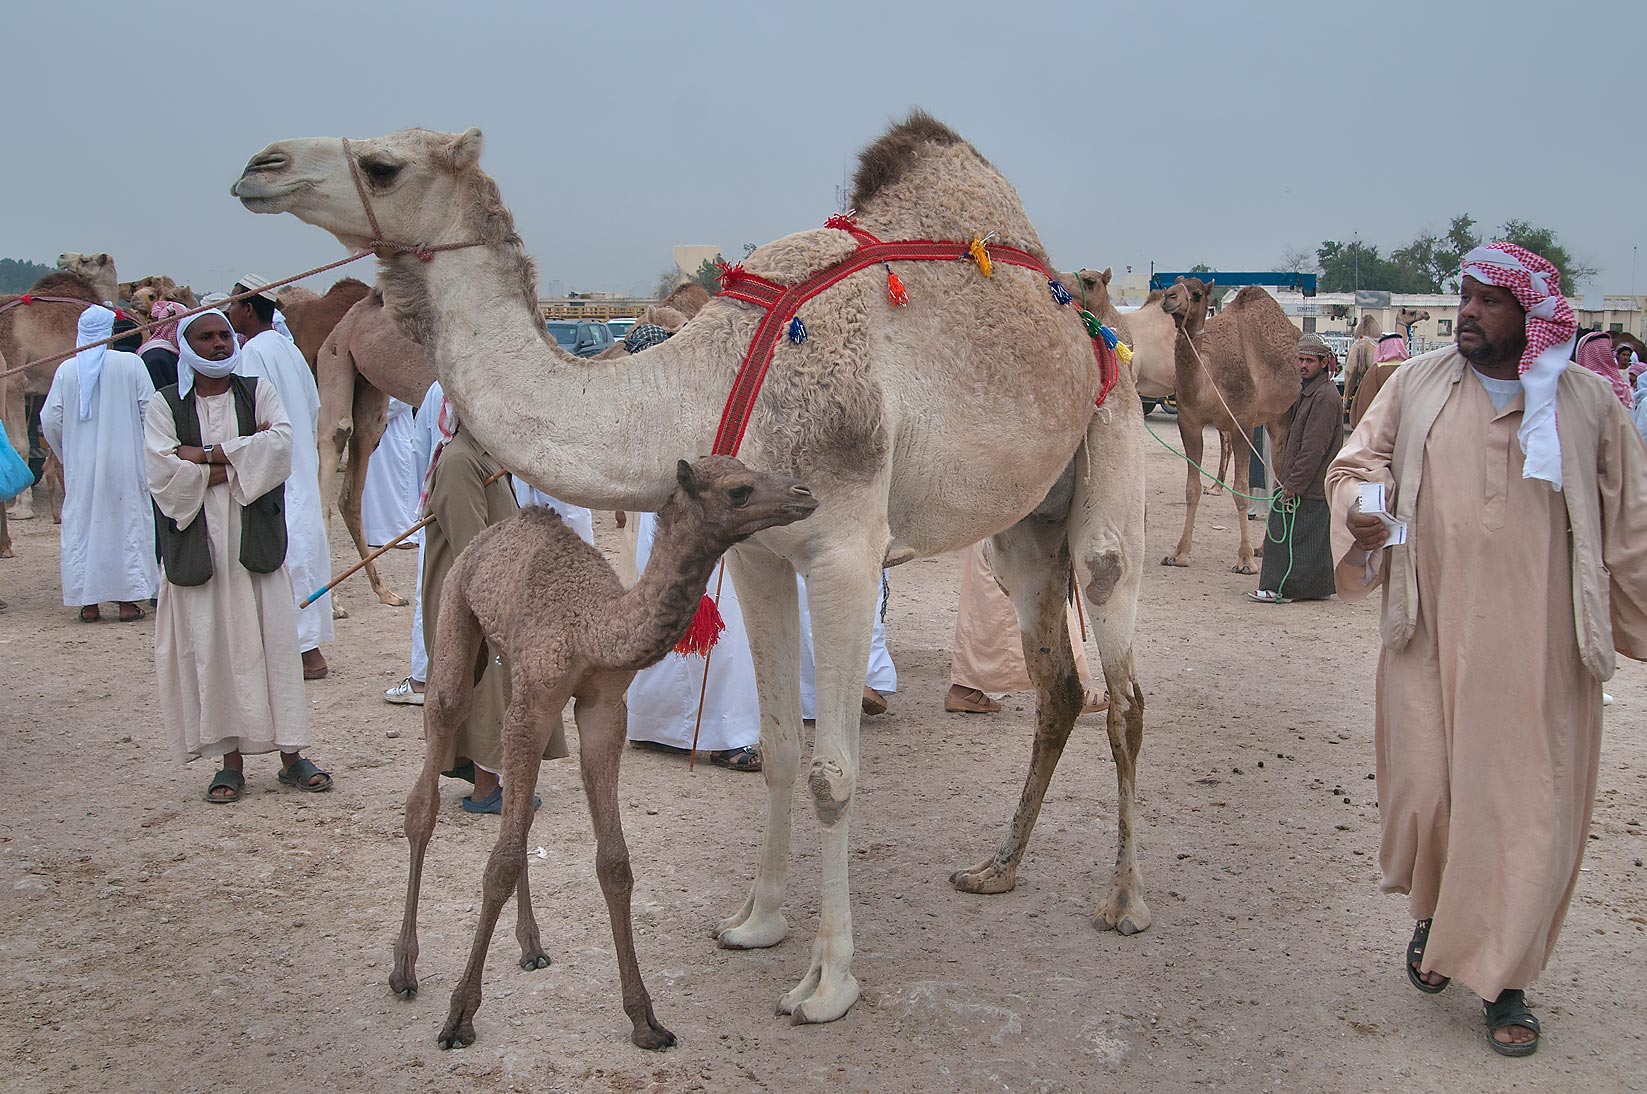 Camel with its calf in Camel Market (Souq), racing section. Doha, Qatar